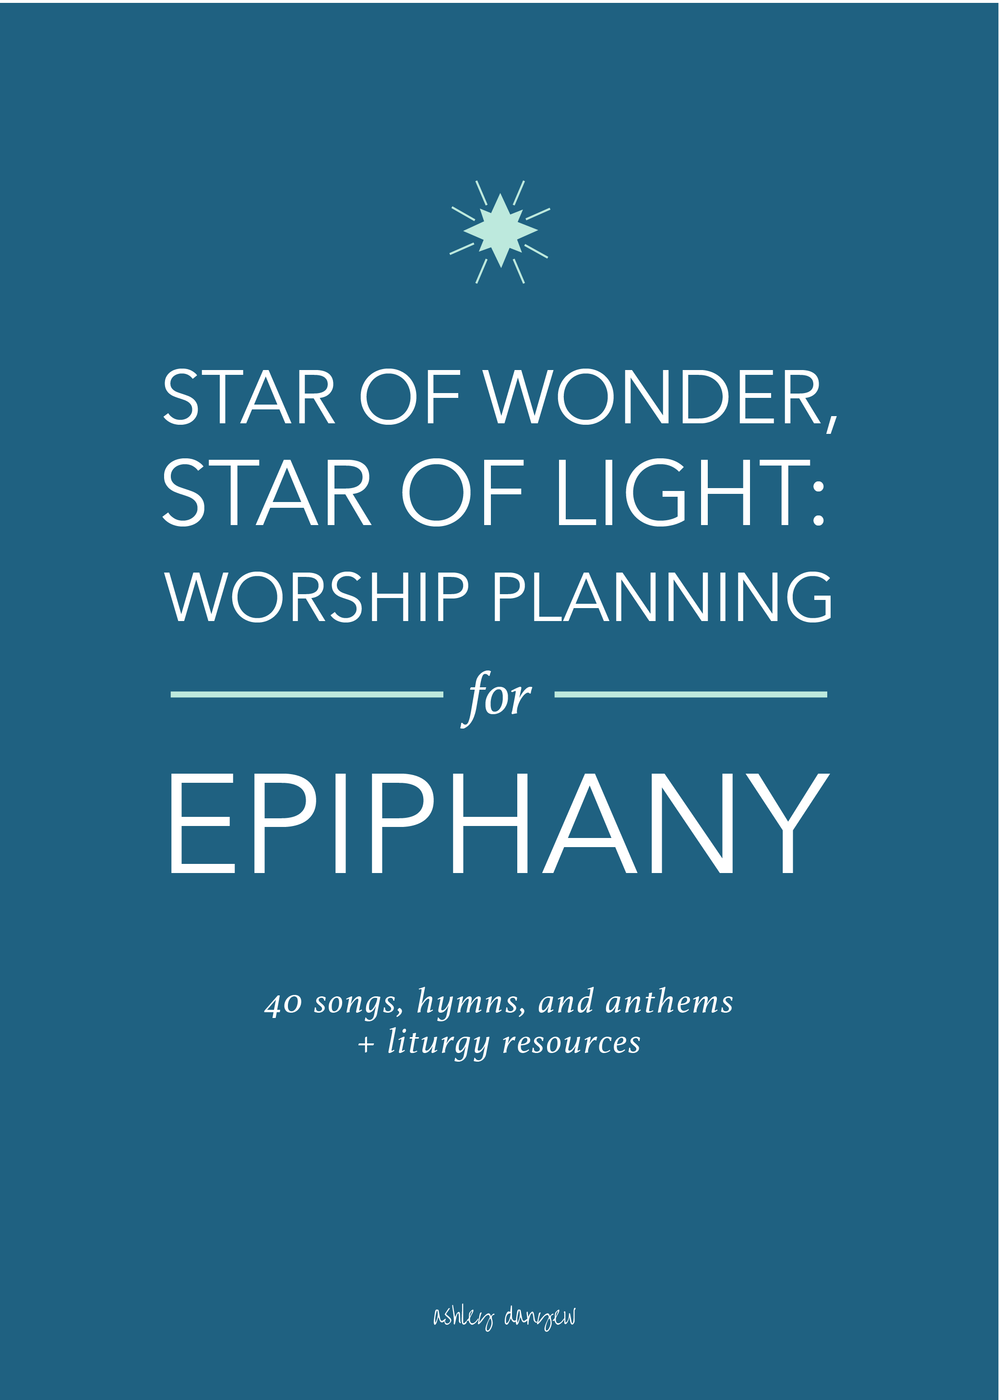 Copy of Star of Wonder, Star of Light: Worship Planning for Epiphany